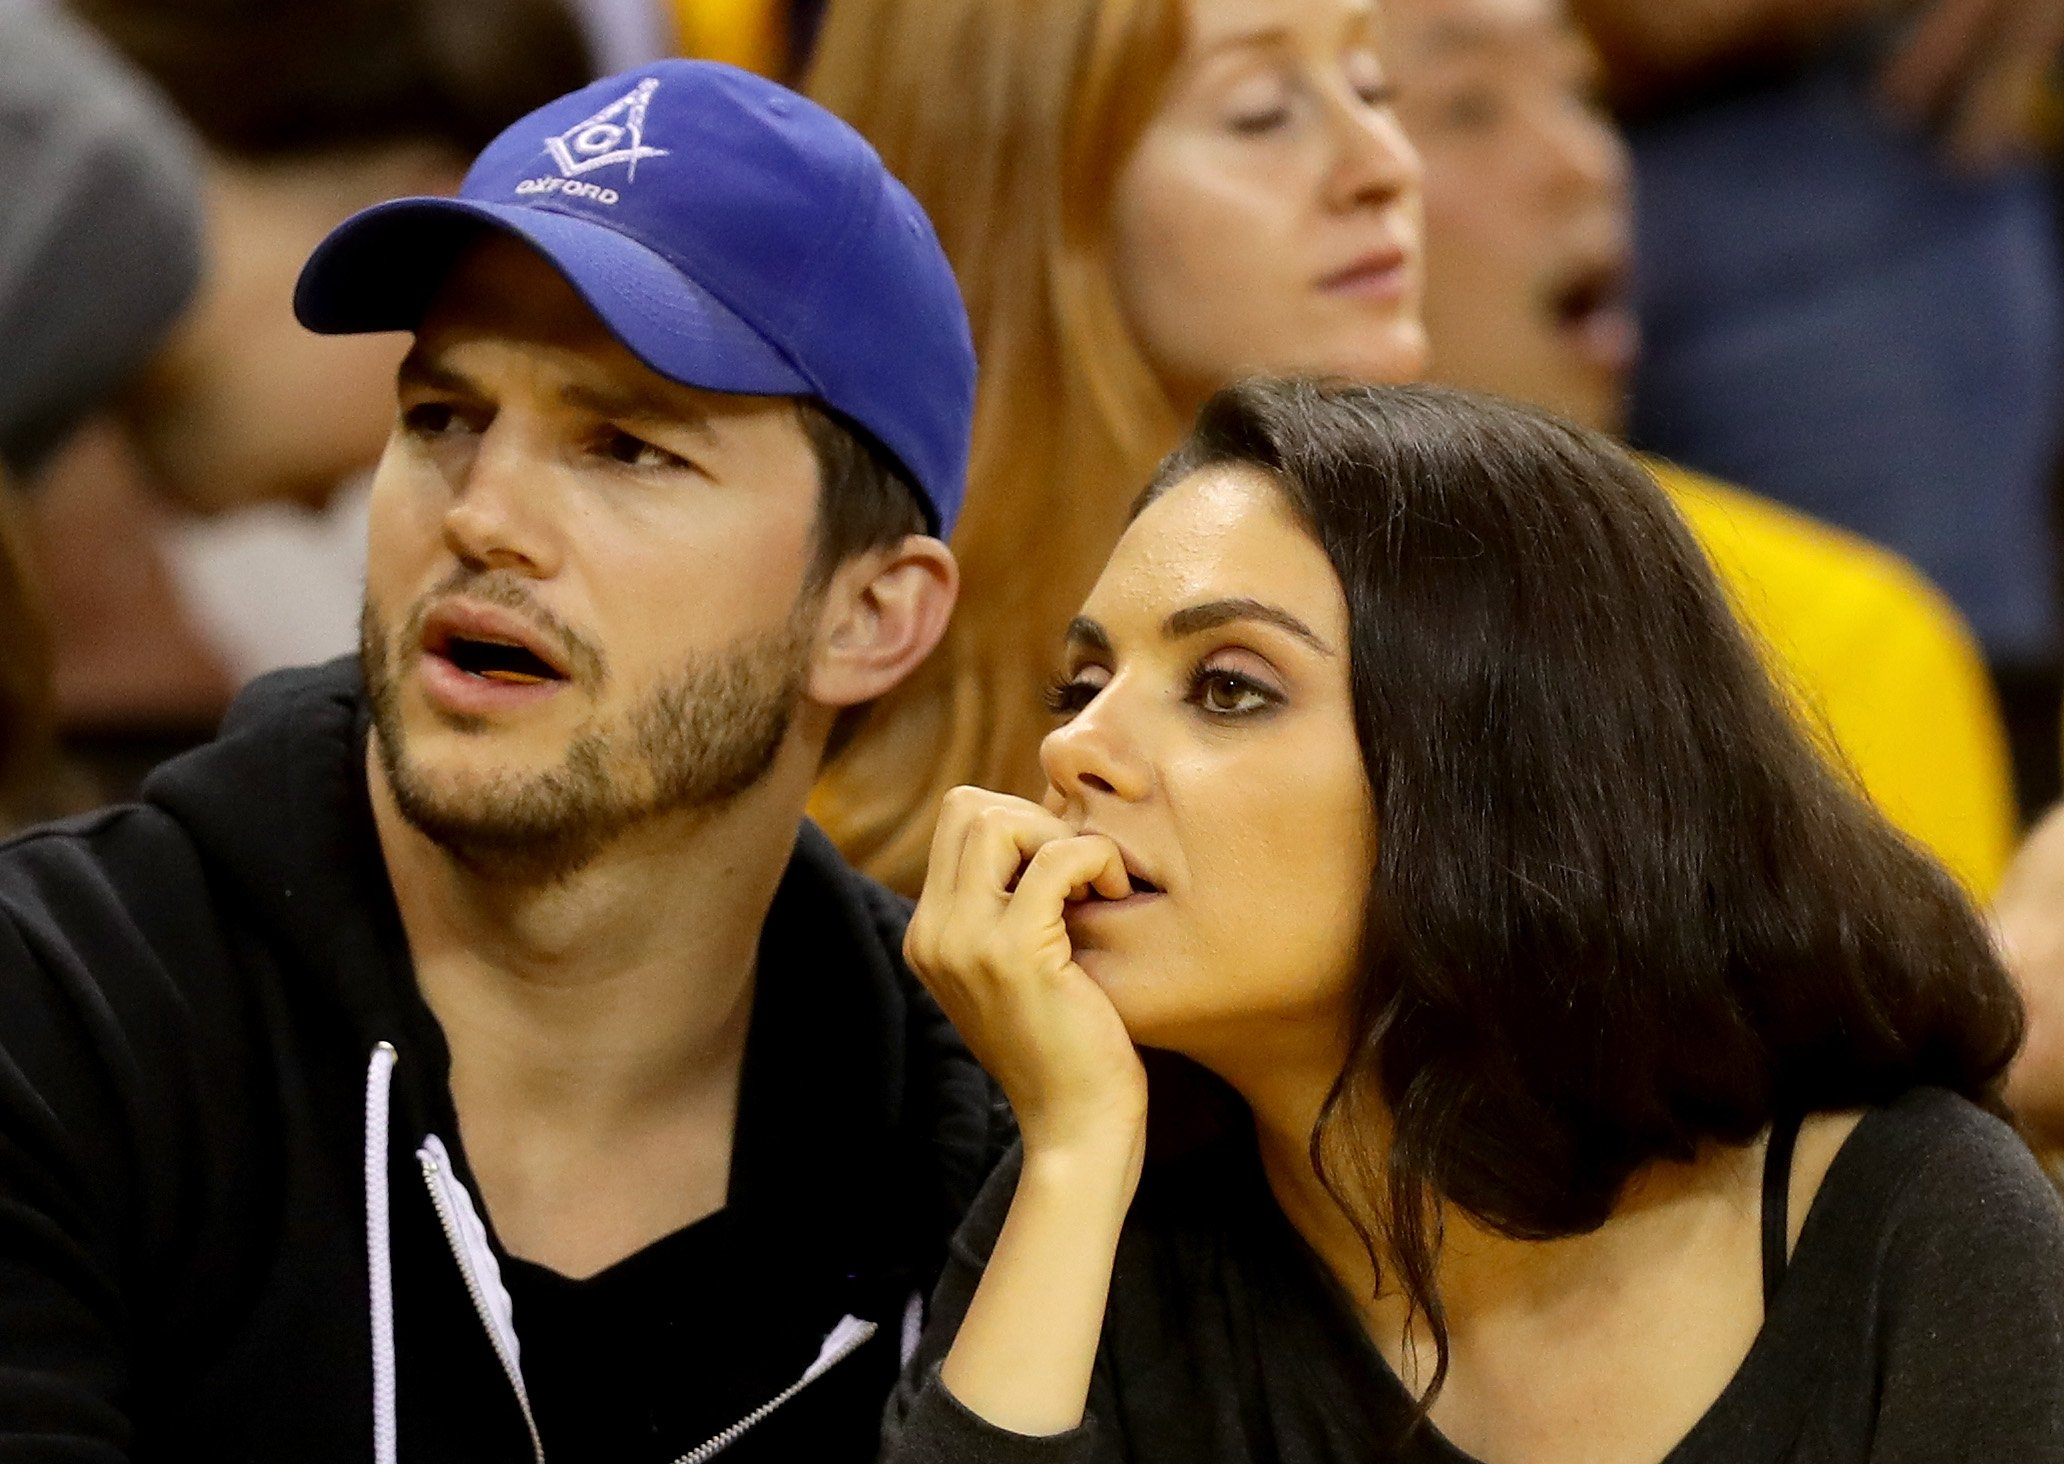 Image Credits: Getty Images | Mila has been married with actor Ashton Kutcher since 2015